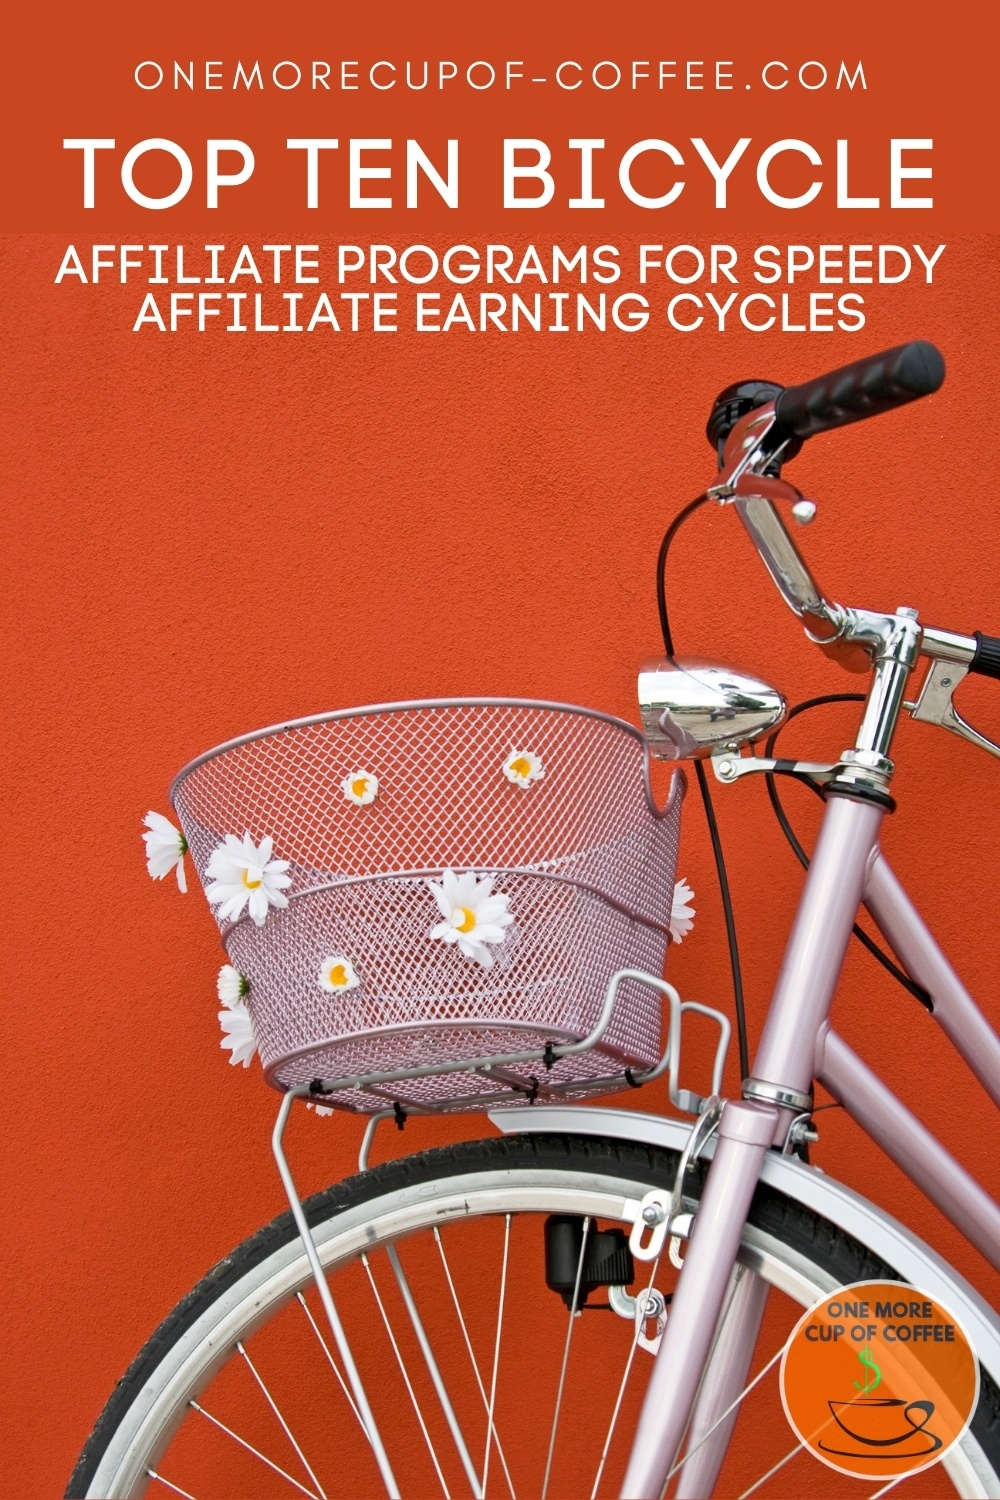 """closeup image of a bicycle showing the handles, front wheel, and basket with flower decors on it, against an orange background; with text overlay """"Top Ten Bicycle Affiliate Programs For Speedy Affiliate Earning Cycles"""""""